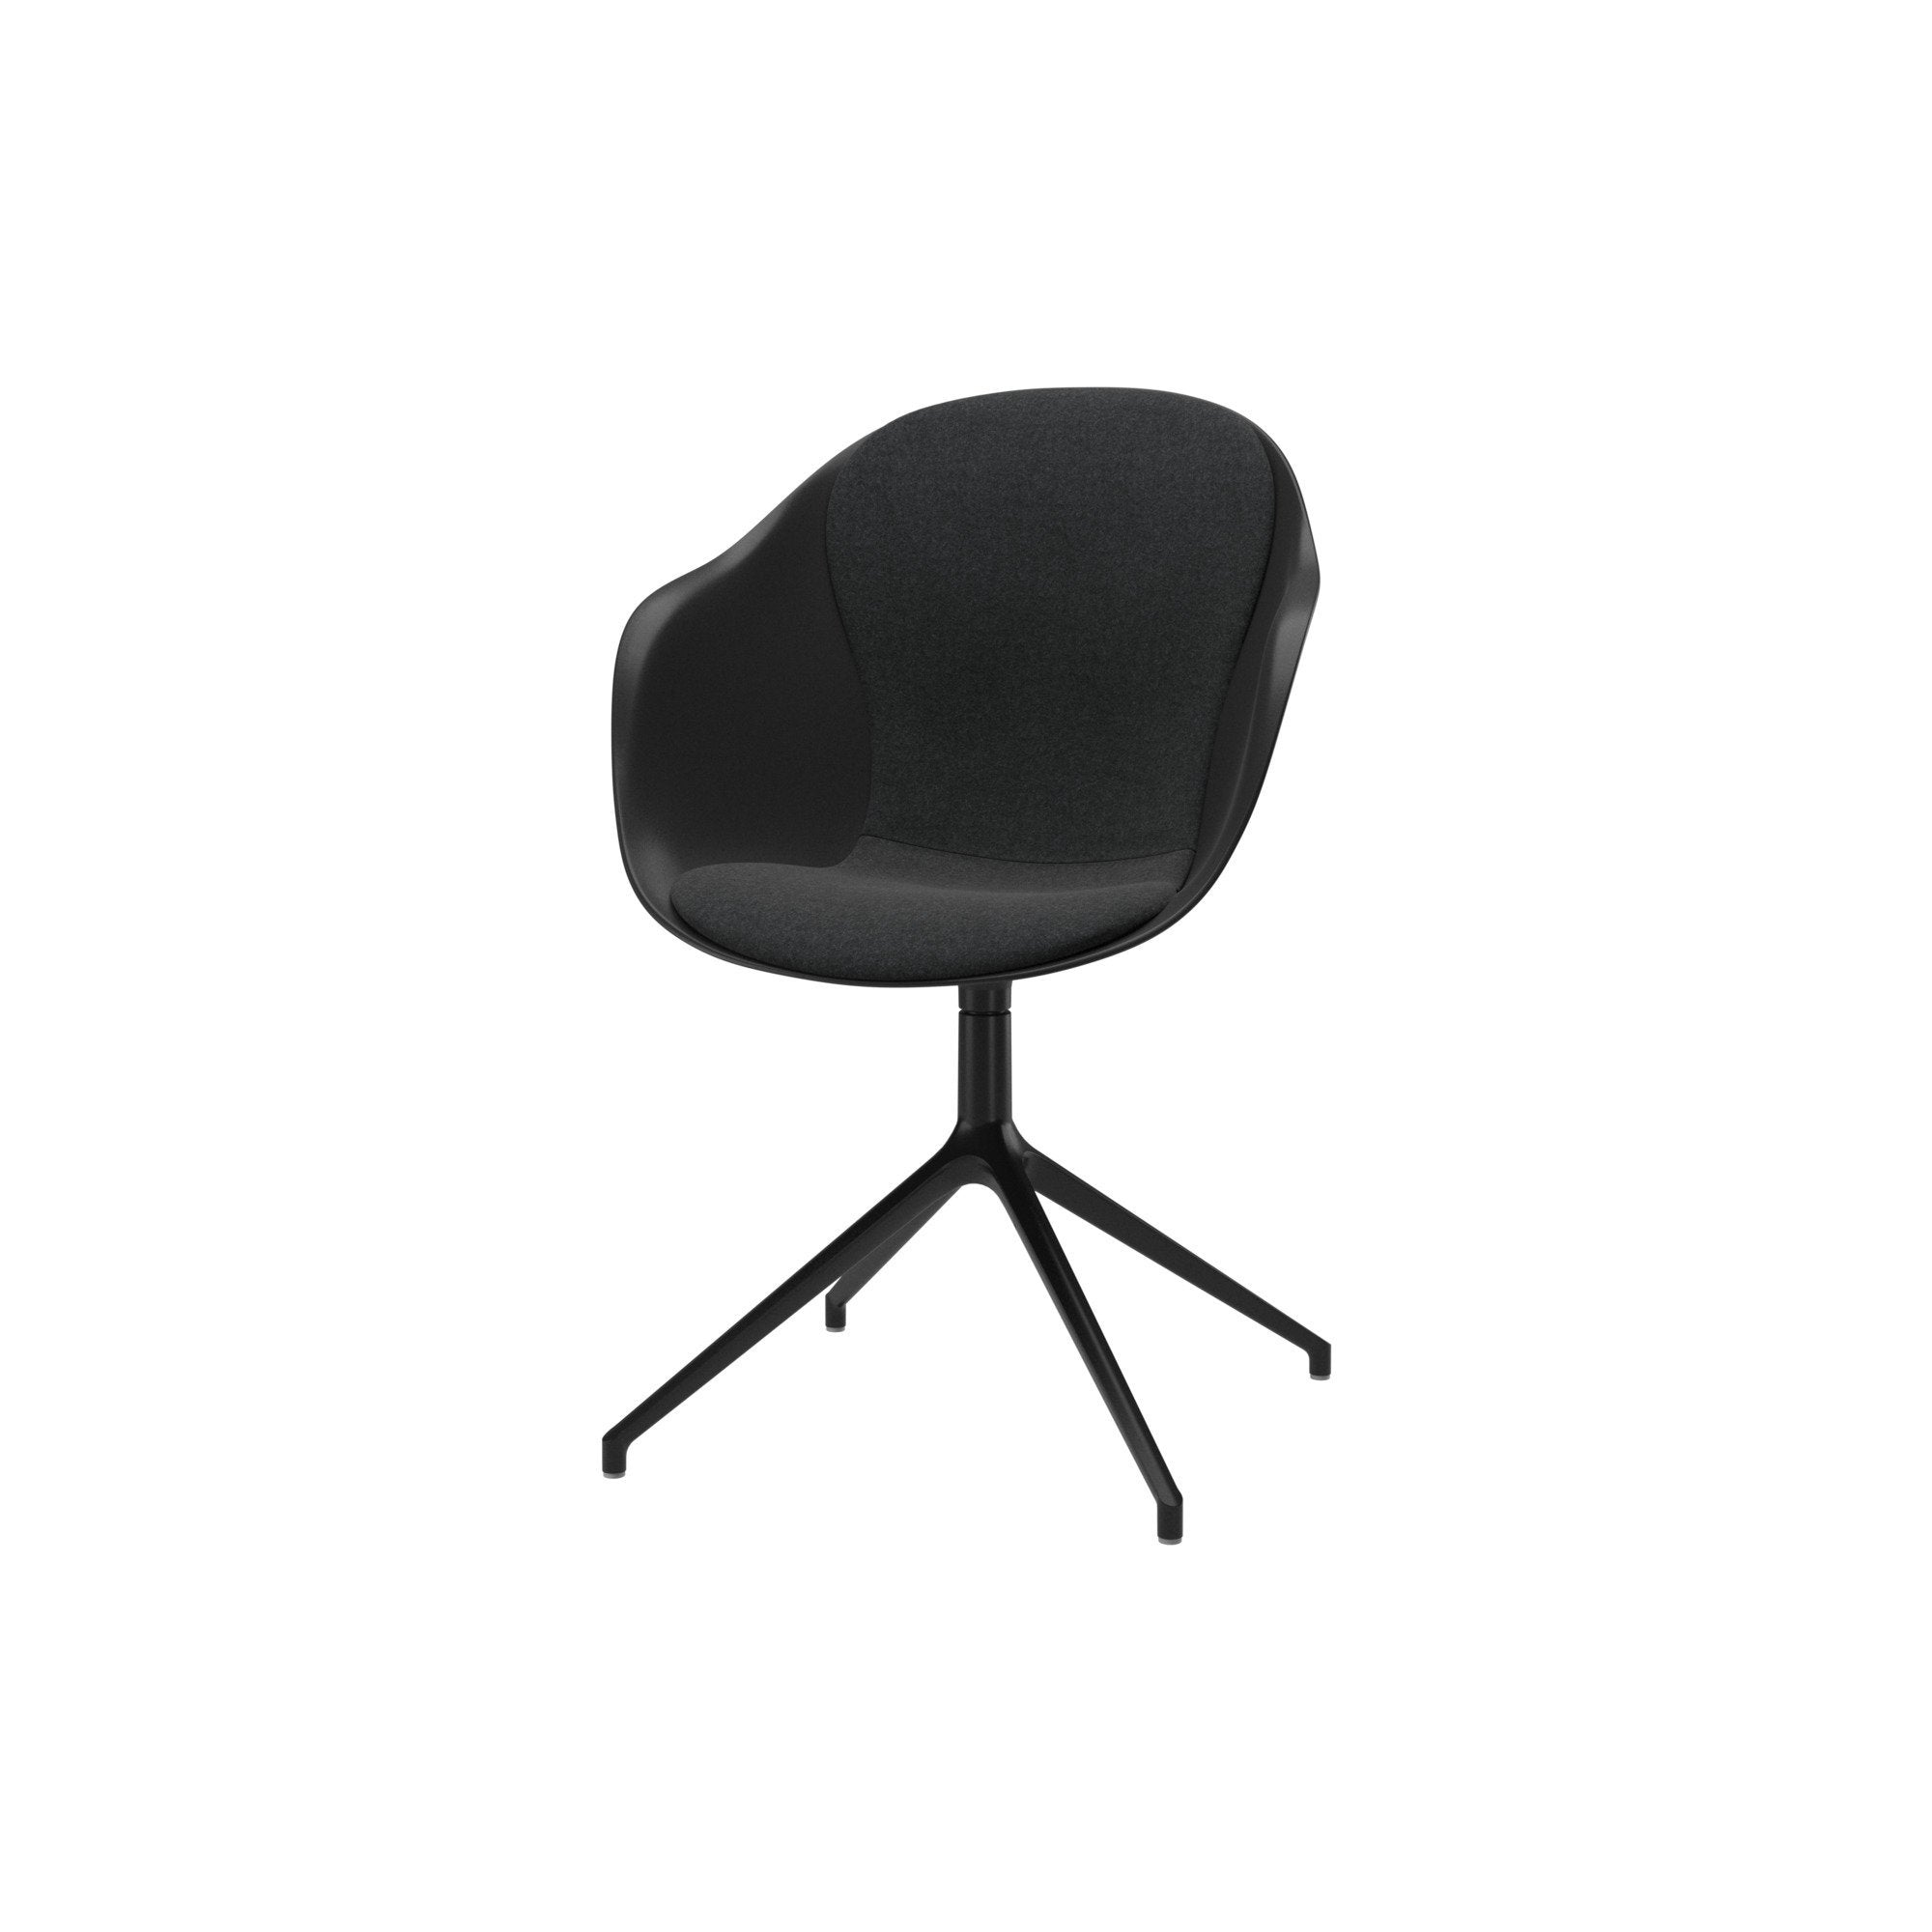 Adelaide Chair with swivel function - Dark Grey with armrests